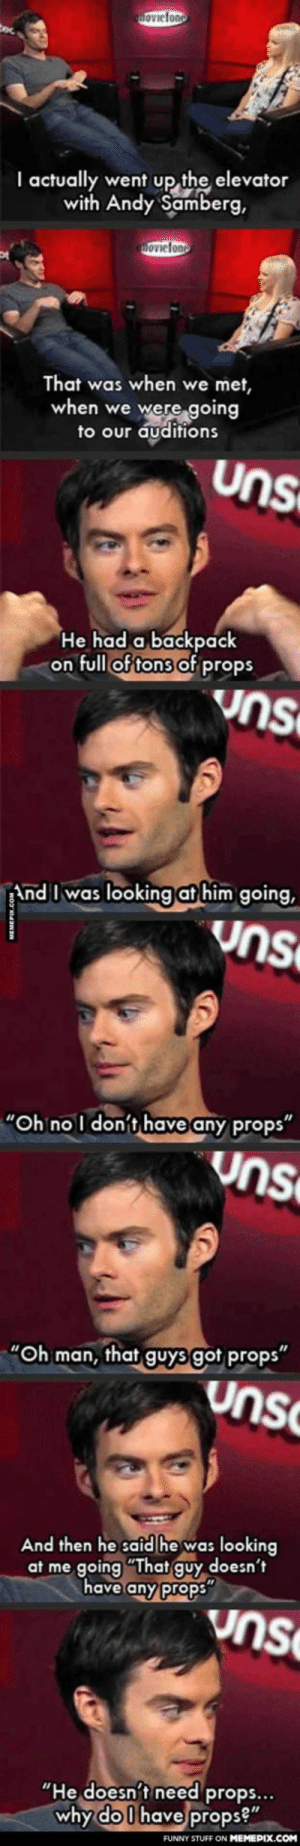 "Bill Hader talks about when he went to audition for Saturday Night Live and met Andy Sambergomg-humor.tumblr.com: hoviefono  I actually went up the elevator  with Andy Samberg,  movielono  That was when we met,  when we were going  to our auditions  Uns  He had a backpack  on full of tons of props  uns  And I was looking at him going,  Uns  ""Oh no I don't have any props""  Uns  ""Oh man, that guys got props""  unsC  And then he said he was looking  at me going ""That guy doesn't  have any props  Vnse  ""He doesn't need props...  why do I have props?""  FUNNY STUFF ON MEMEPIX.COM Bill Hader talks about when he went to audition for Saturday Night Live and met Andy Sambergomg-humor.tumblr.com"